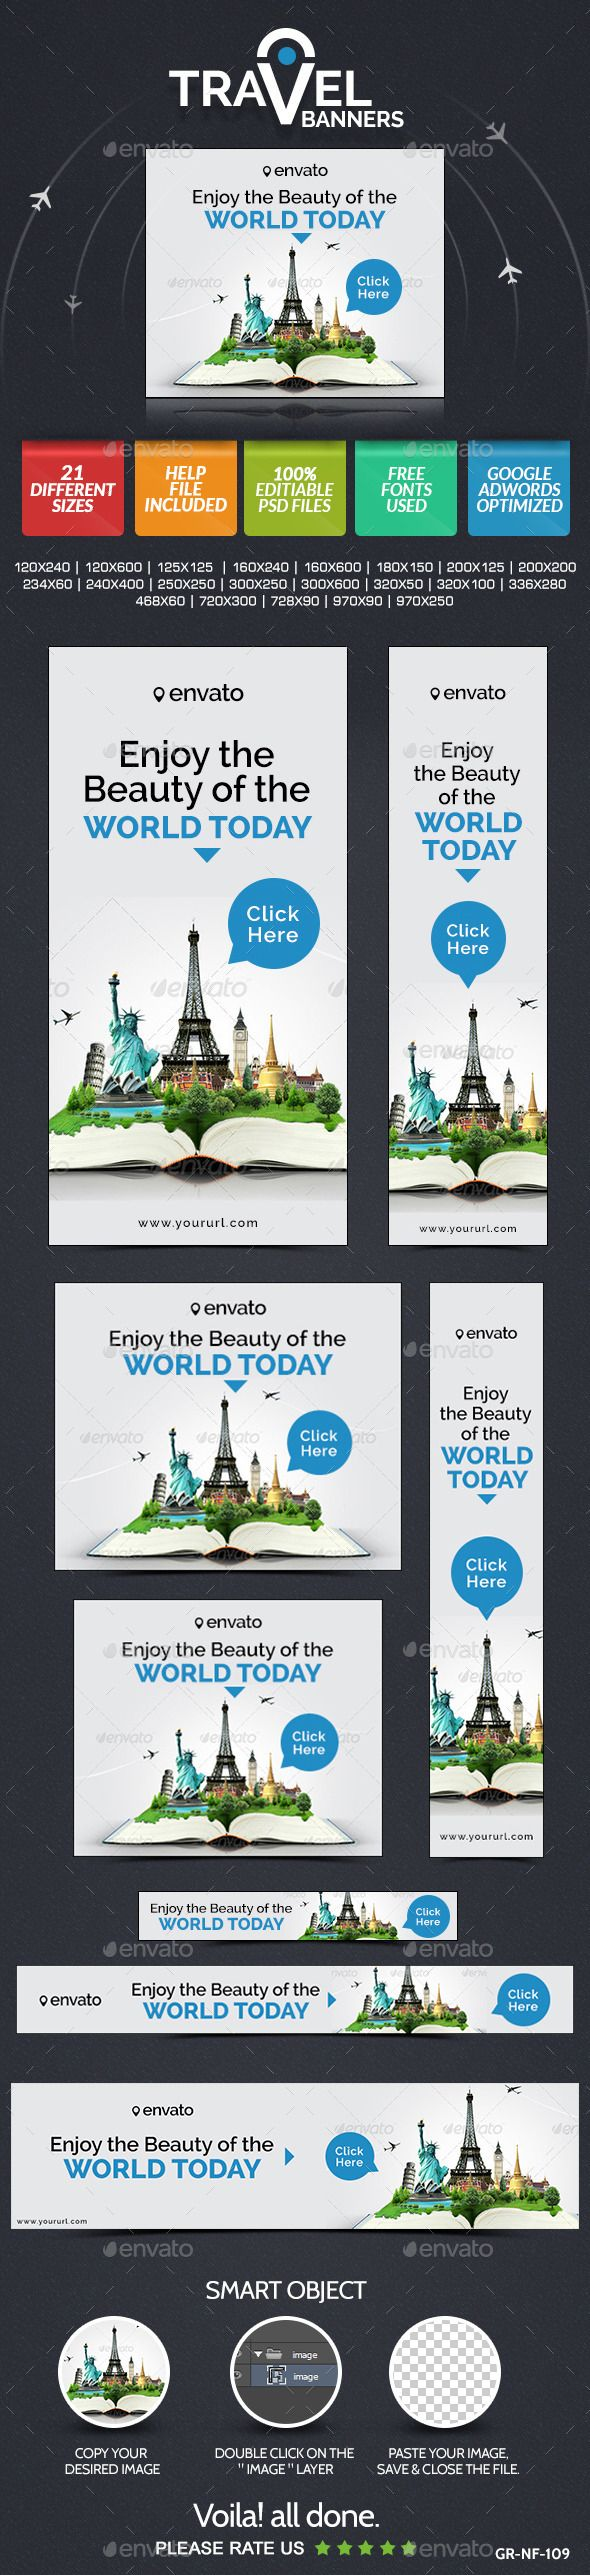 Travel & Tourism Web Banner Design Set | Buy and Download: http://graphicriver.net/item/travel-tourism-web-banner-design-set/9060467?WT.ac=category_thumb&WT.z_author=doto&ref=ksioks